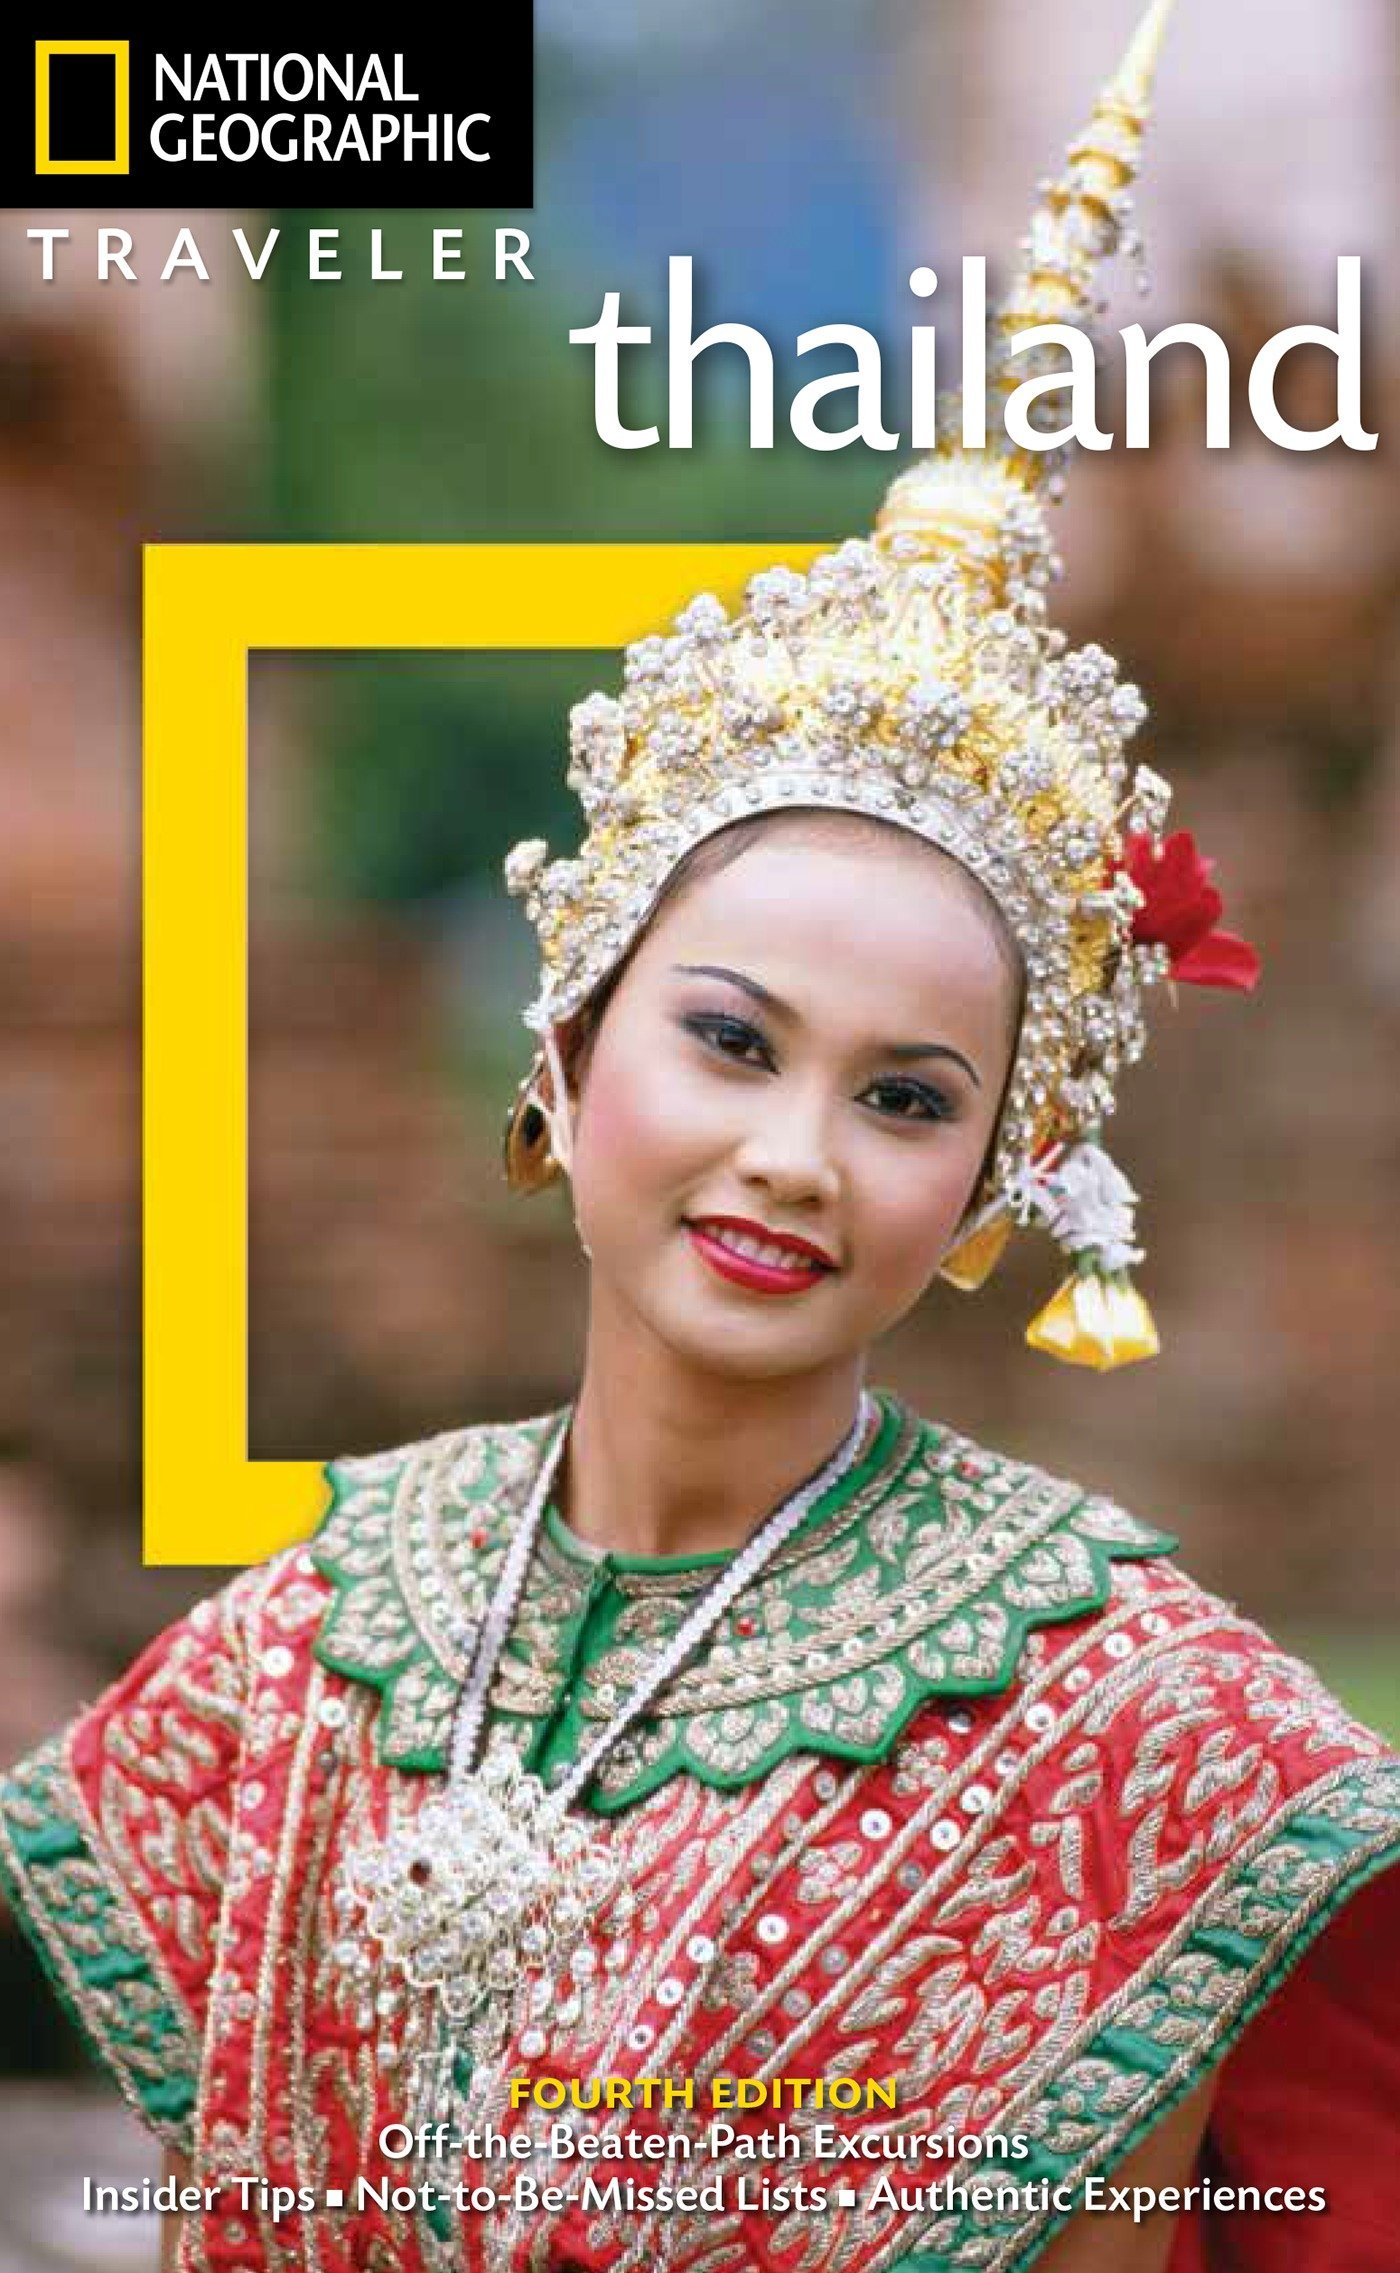 Download National Geographic Traveler: Thailand, 4th Edition pdf